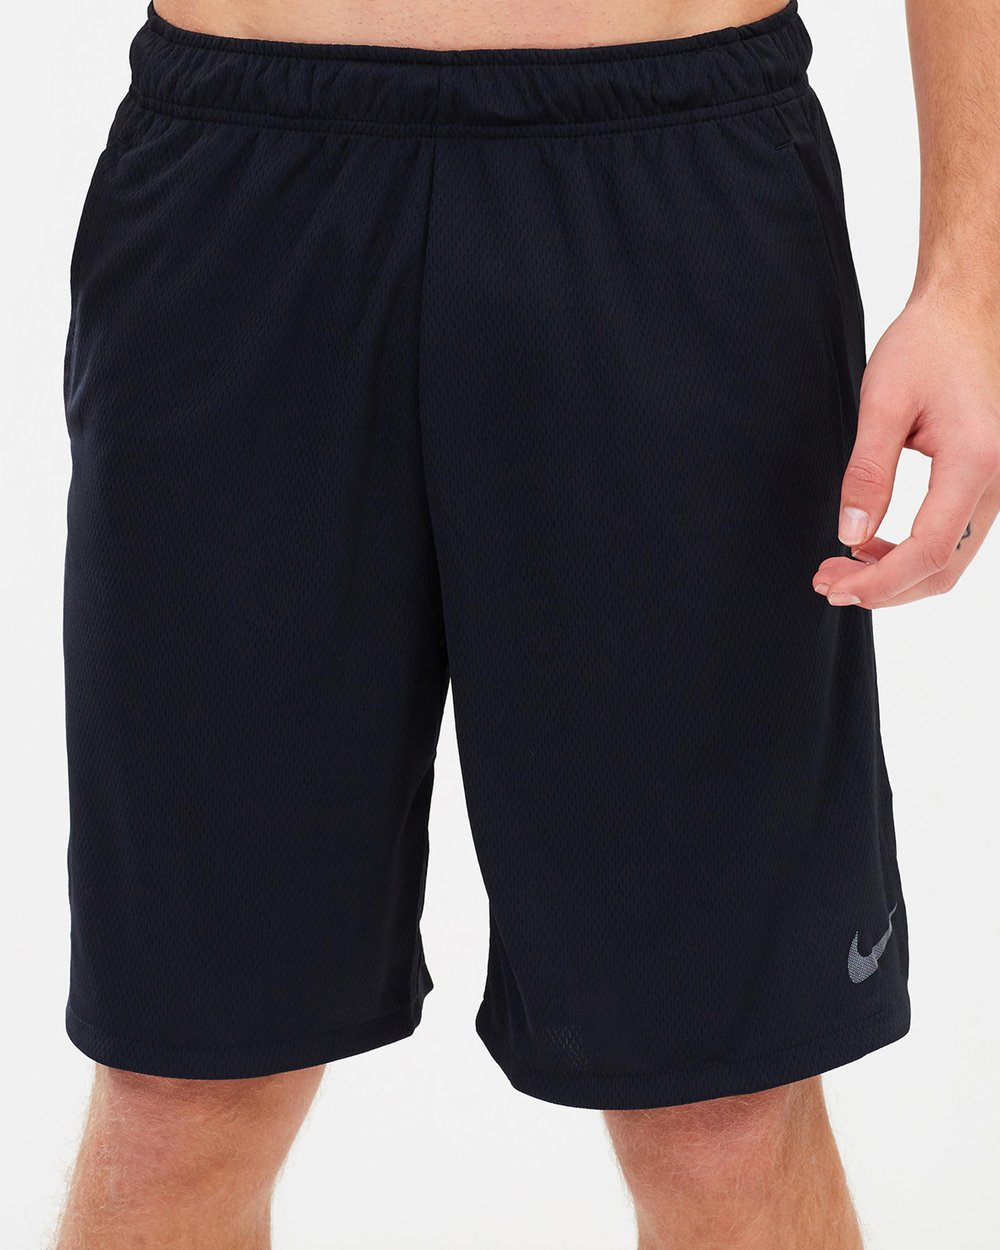 Dri-FIT 4.0 Training Shorts by Nike Online  c74700c3a